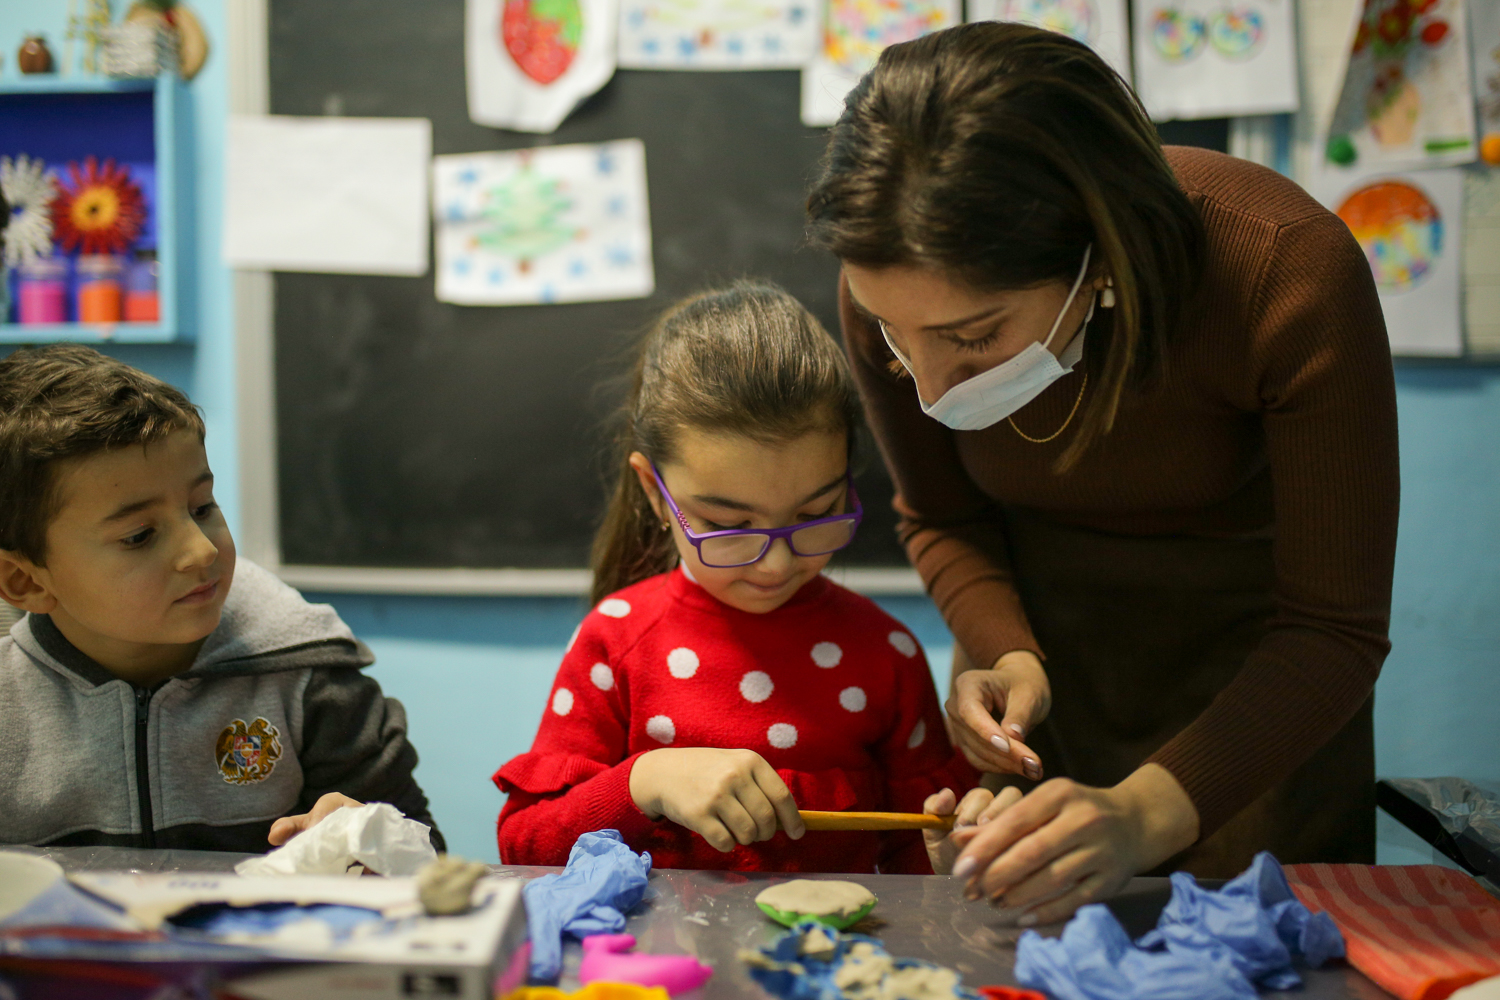 Art classes helped re-establish a sense of normalcy for children in Armenia who were affected by the fighting that broke out in the Nagorno-Karabakh region last Fall. UNICEF and partners created a program to ensure kids could keep up with their studies an